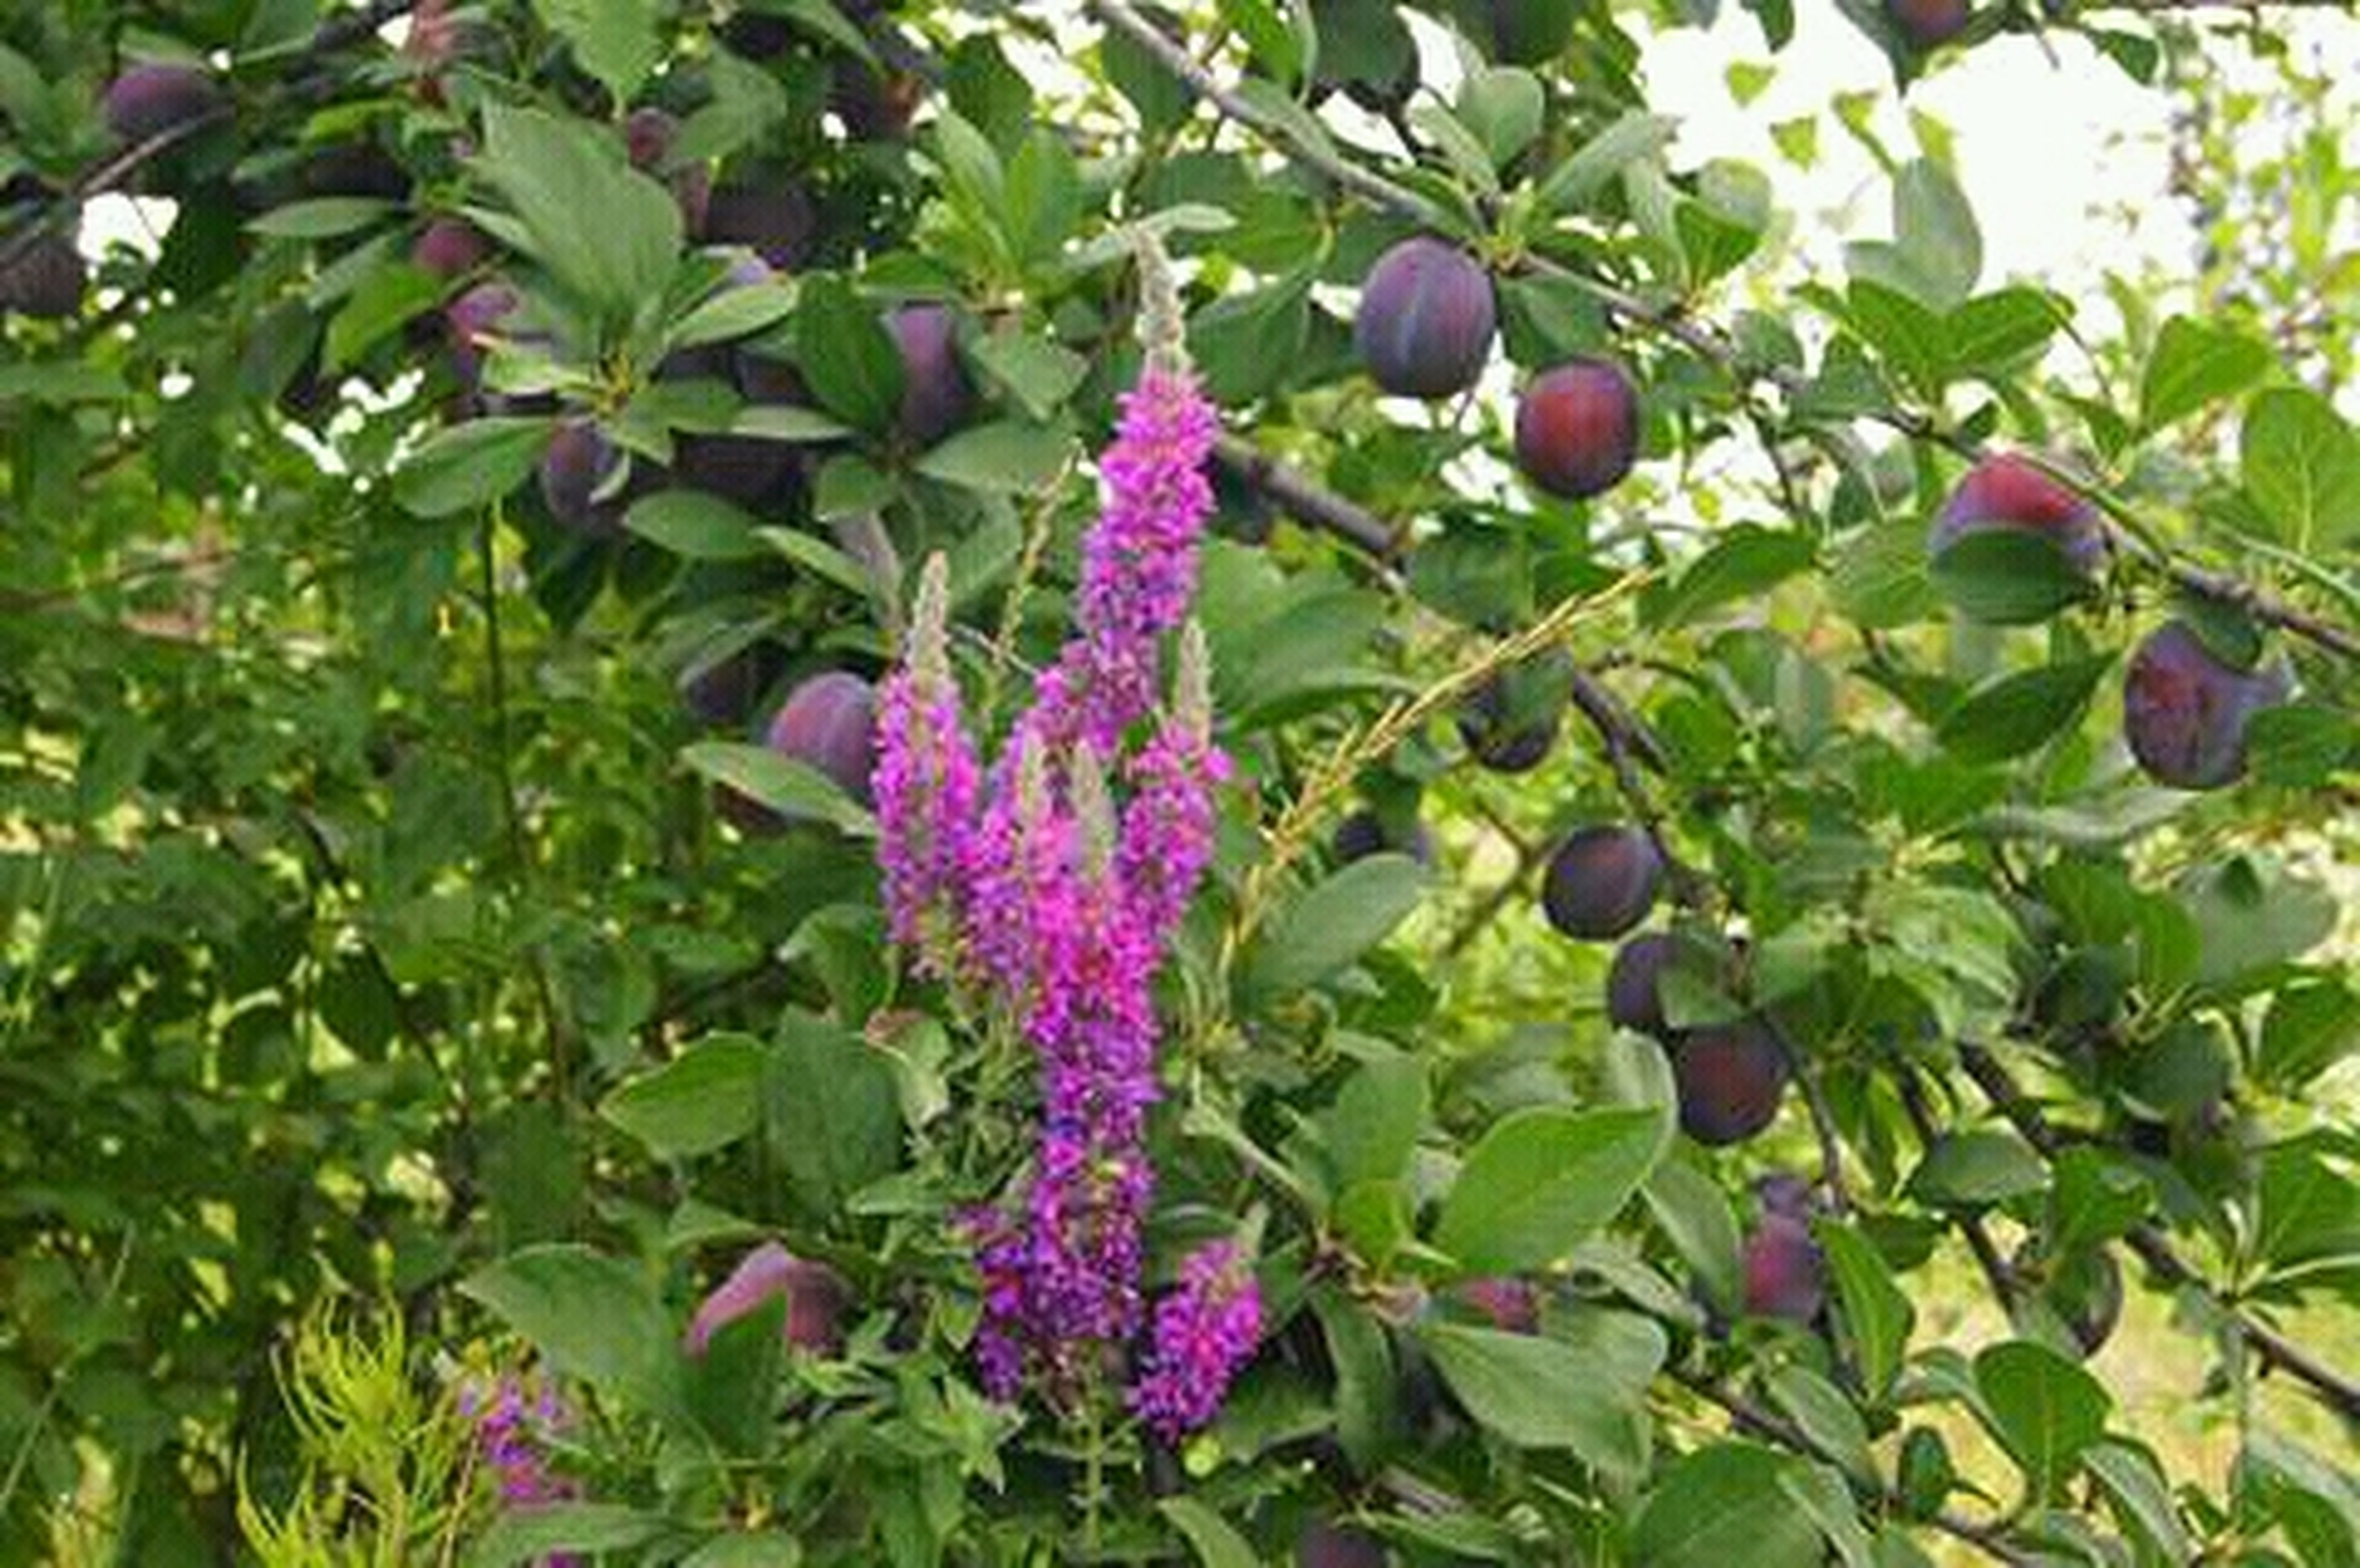 growth, nature, leaf, green color, plant, freshness, outdoors, purple, flower, no people, close-up, beauty in nature, day, tree